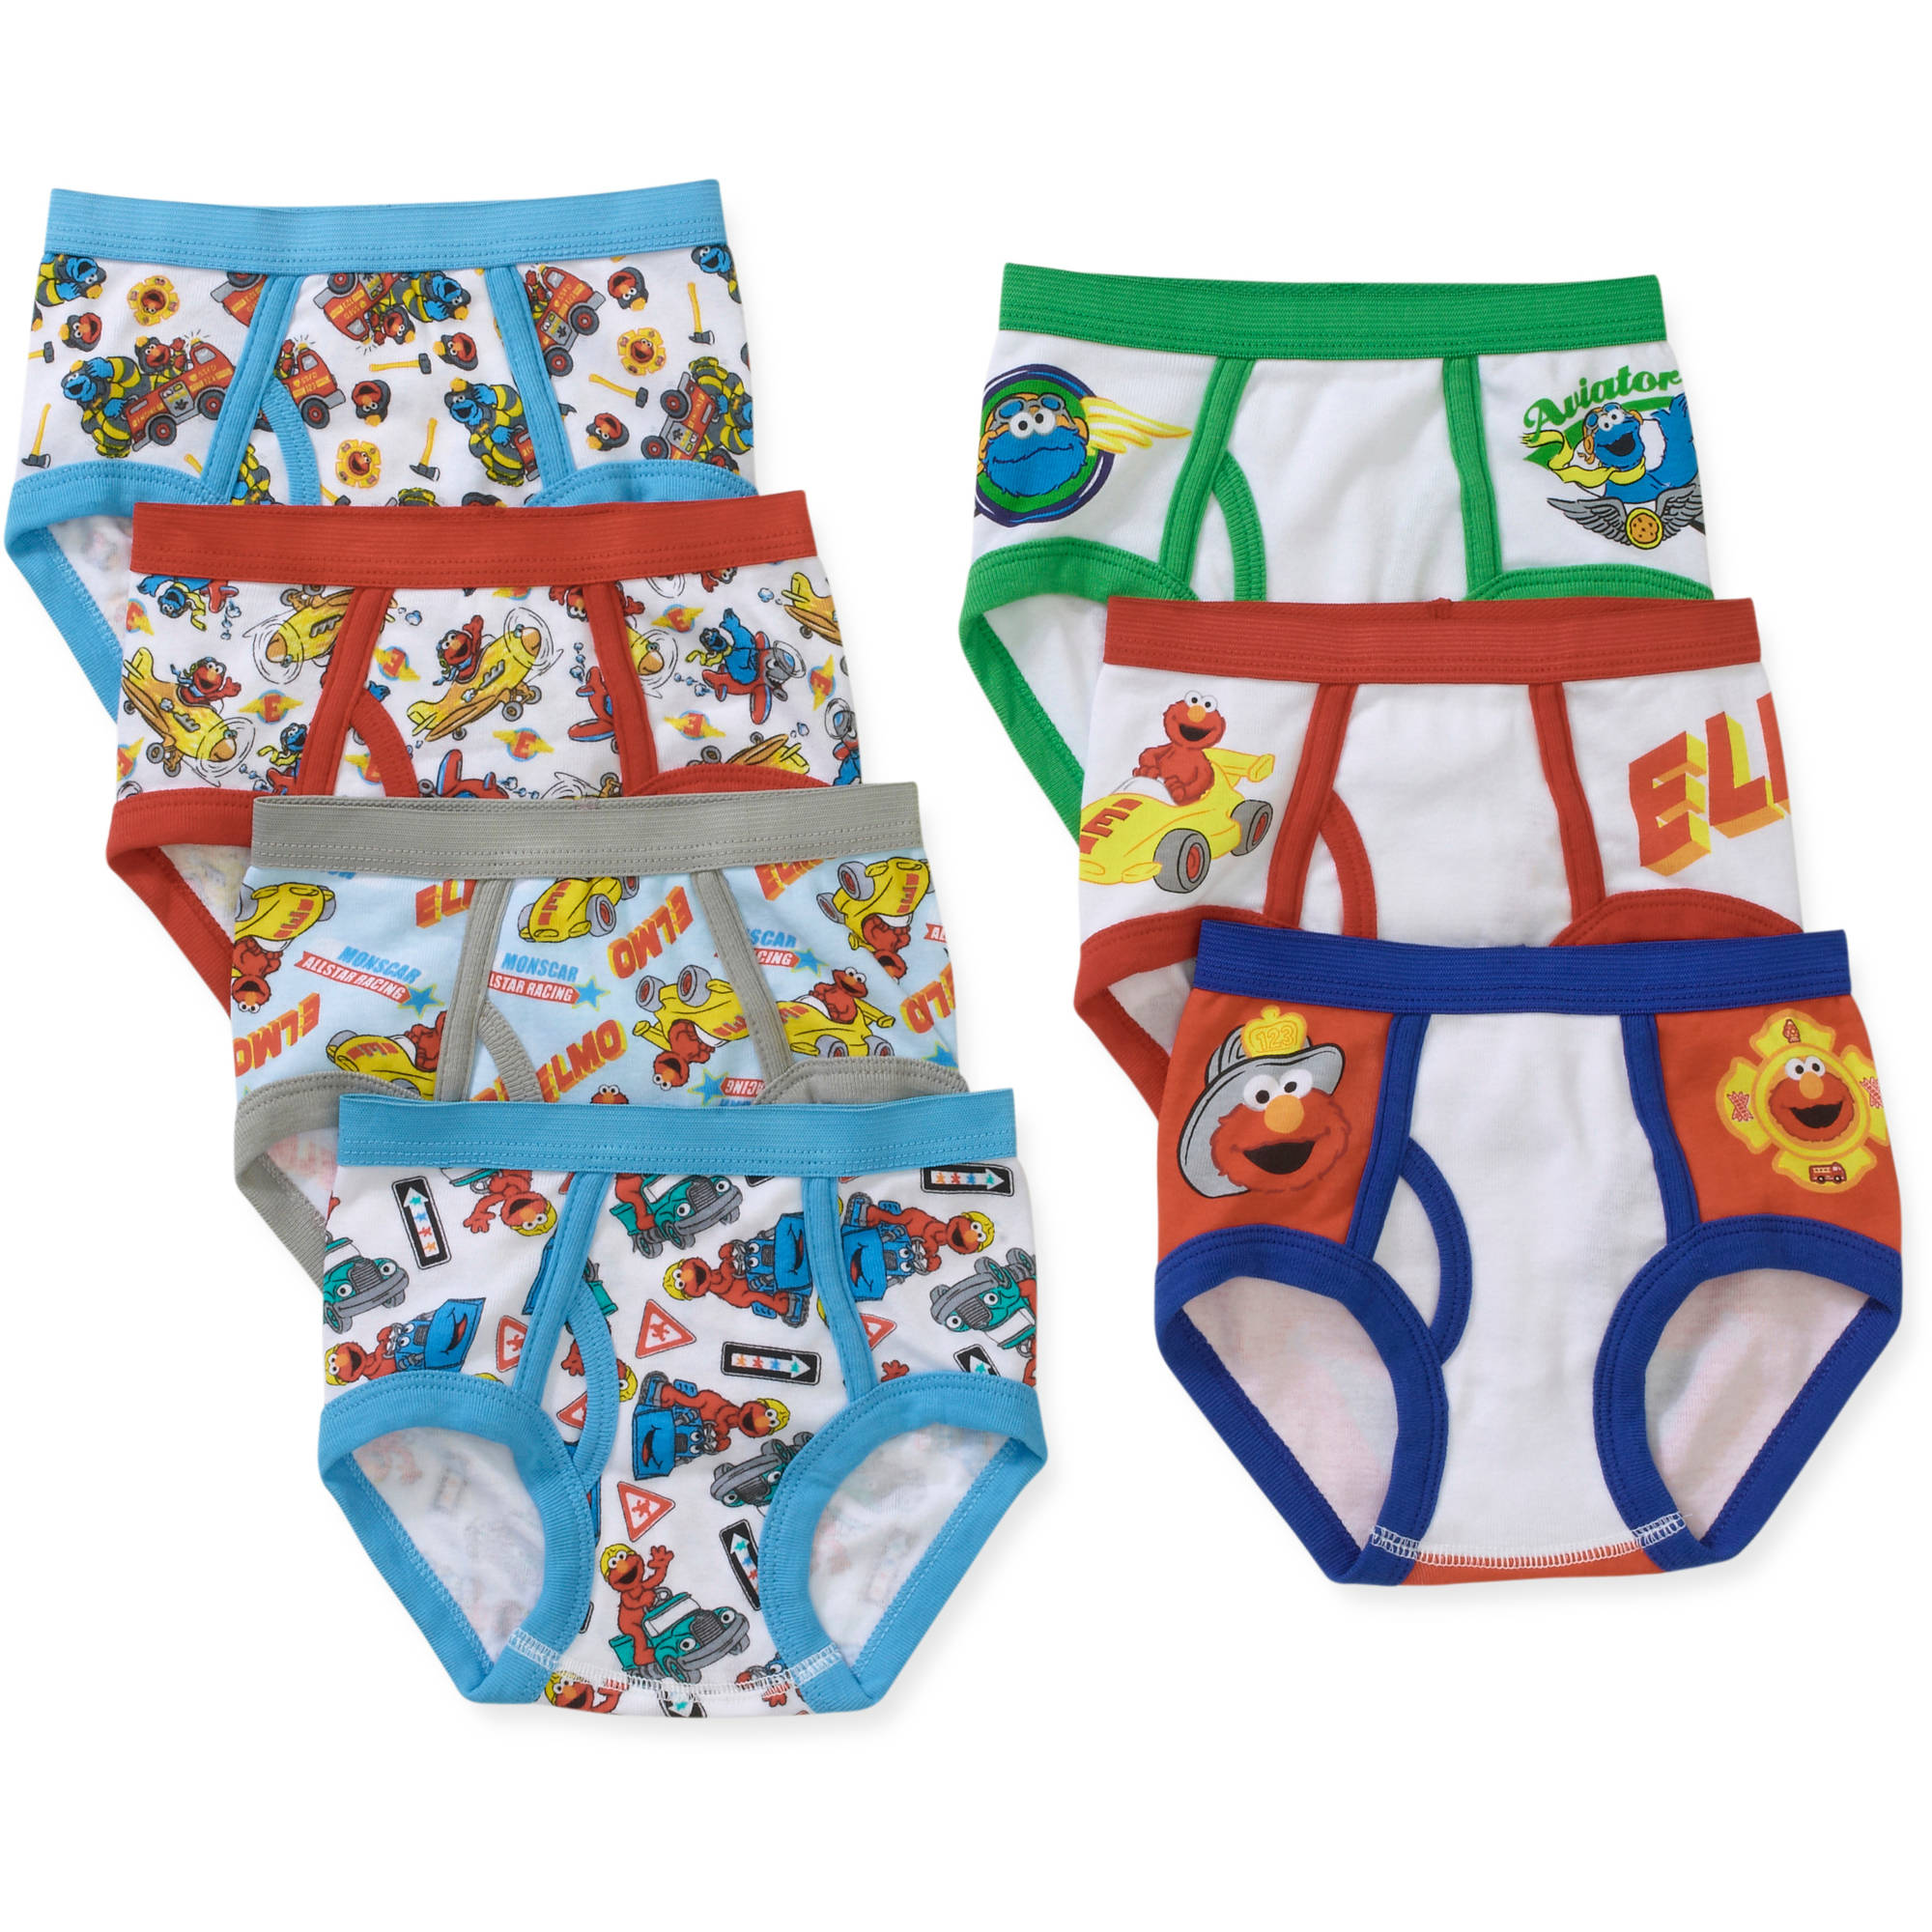 Sesame Street Toddler Boys Underwear, 7 Pack